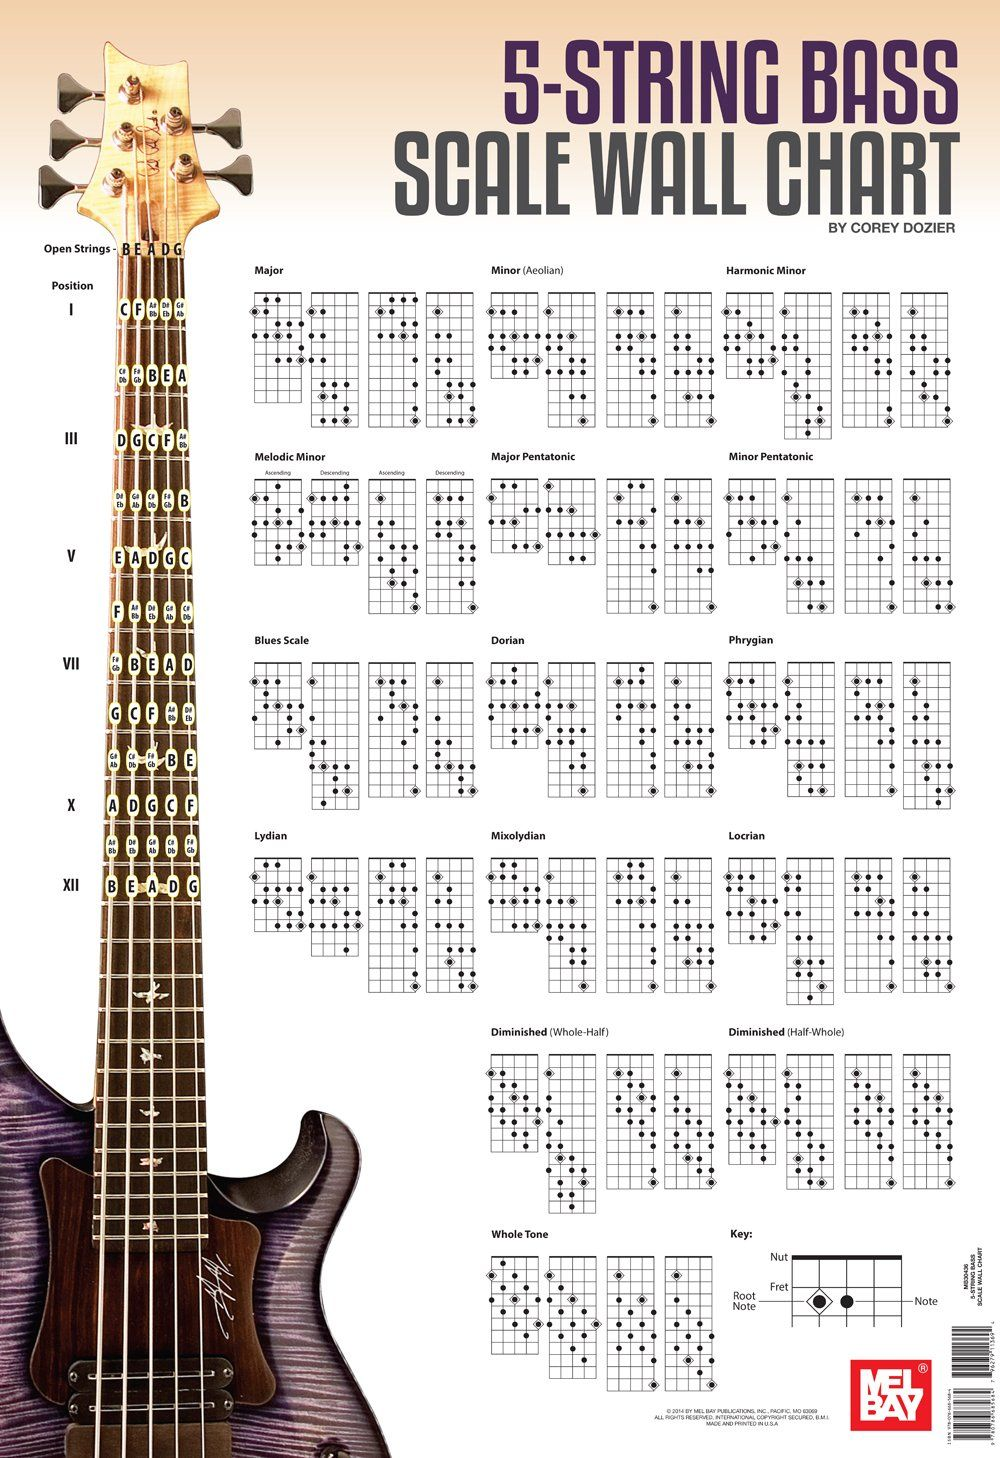 5 string bass scale wall chart corey dozier 9780786685684 books education. Black Bedroom Furniture Sets. Home Design Ideas